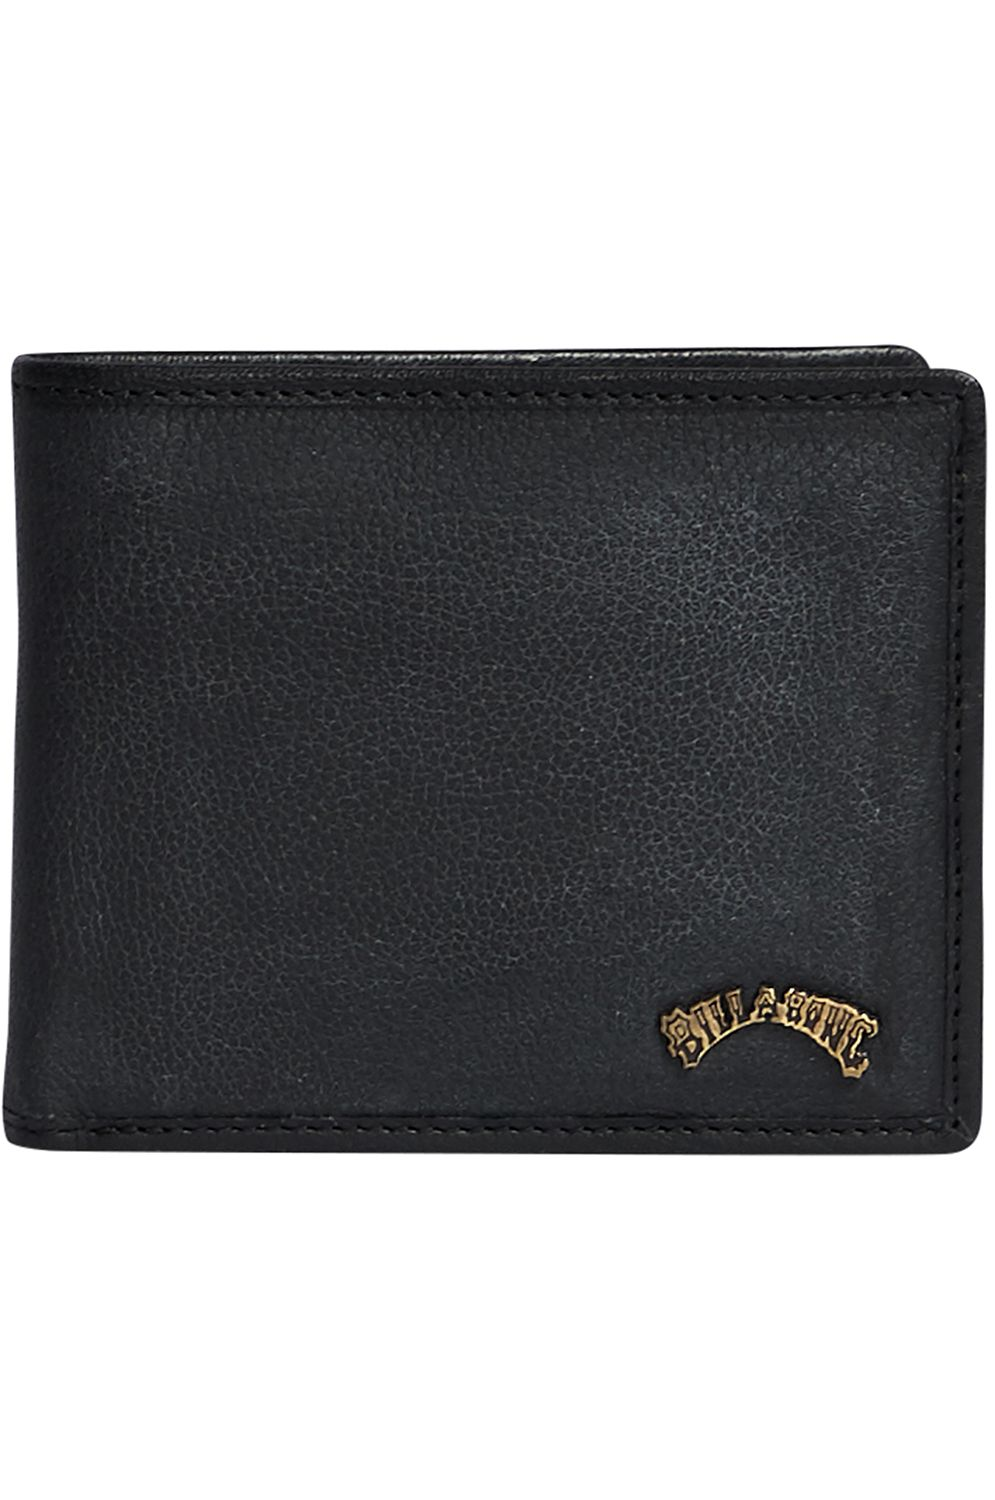 Billabong Leather Wallet ARCH ID LEATHER Black